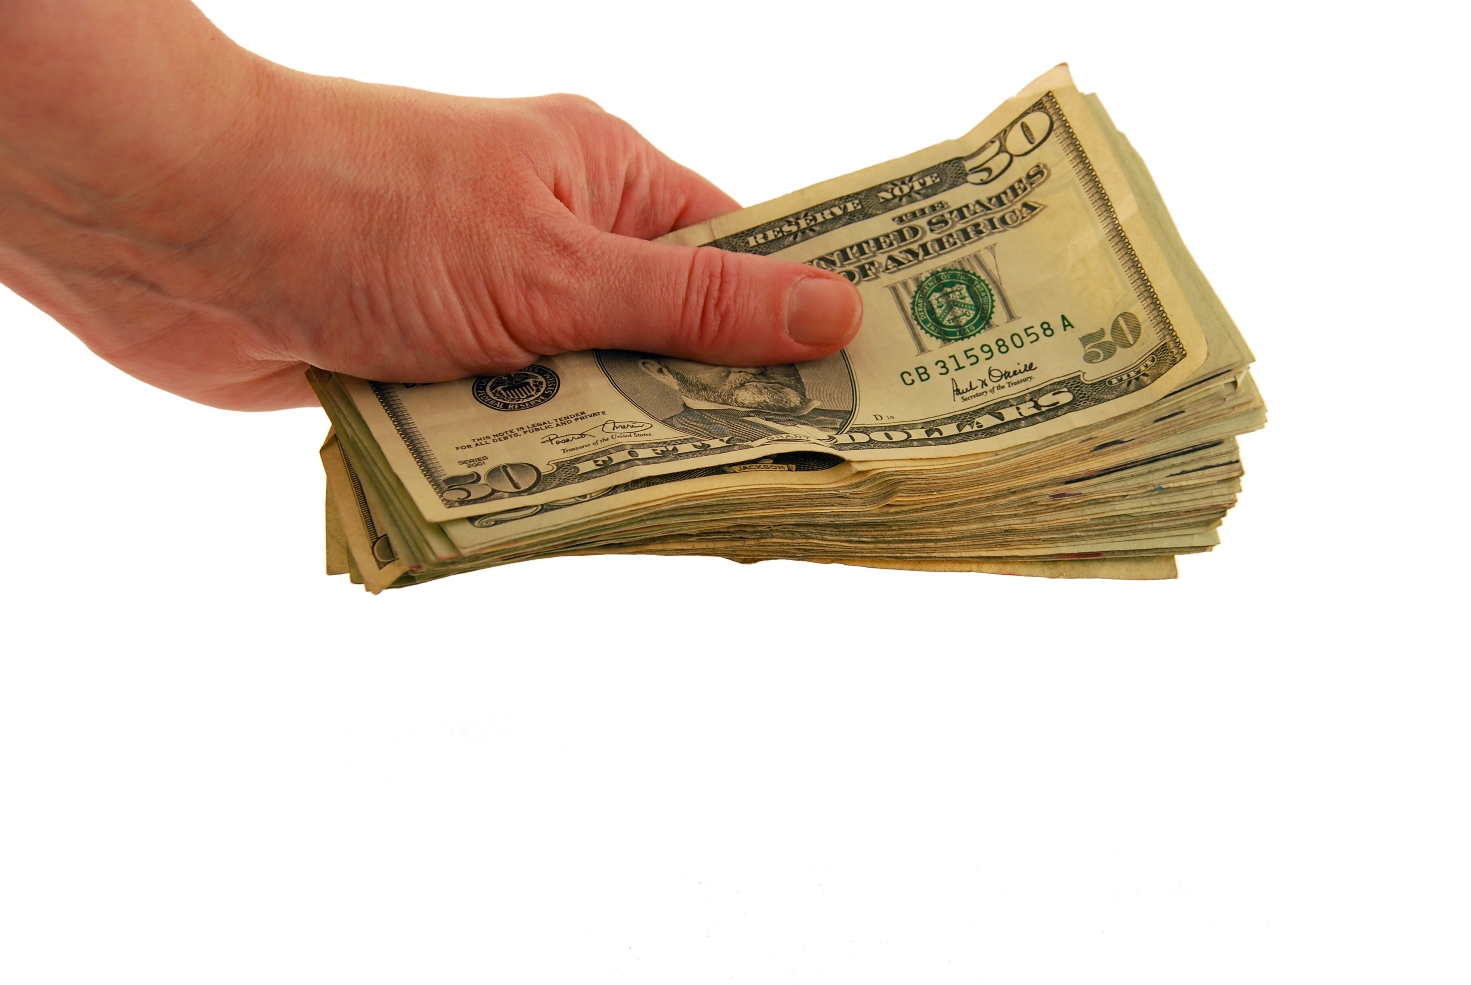 Money in hand in the form of many large bills